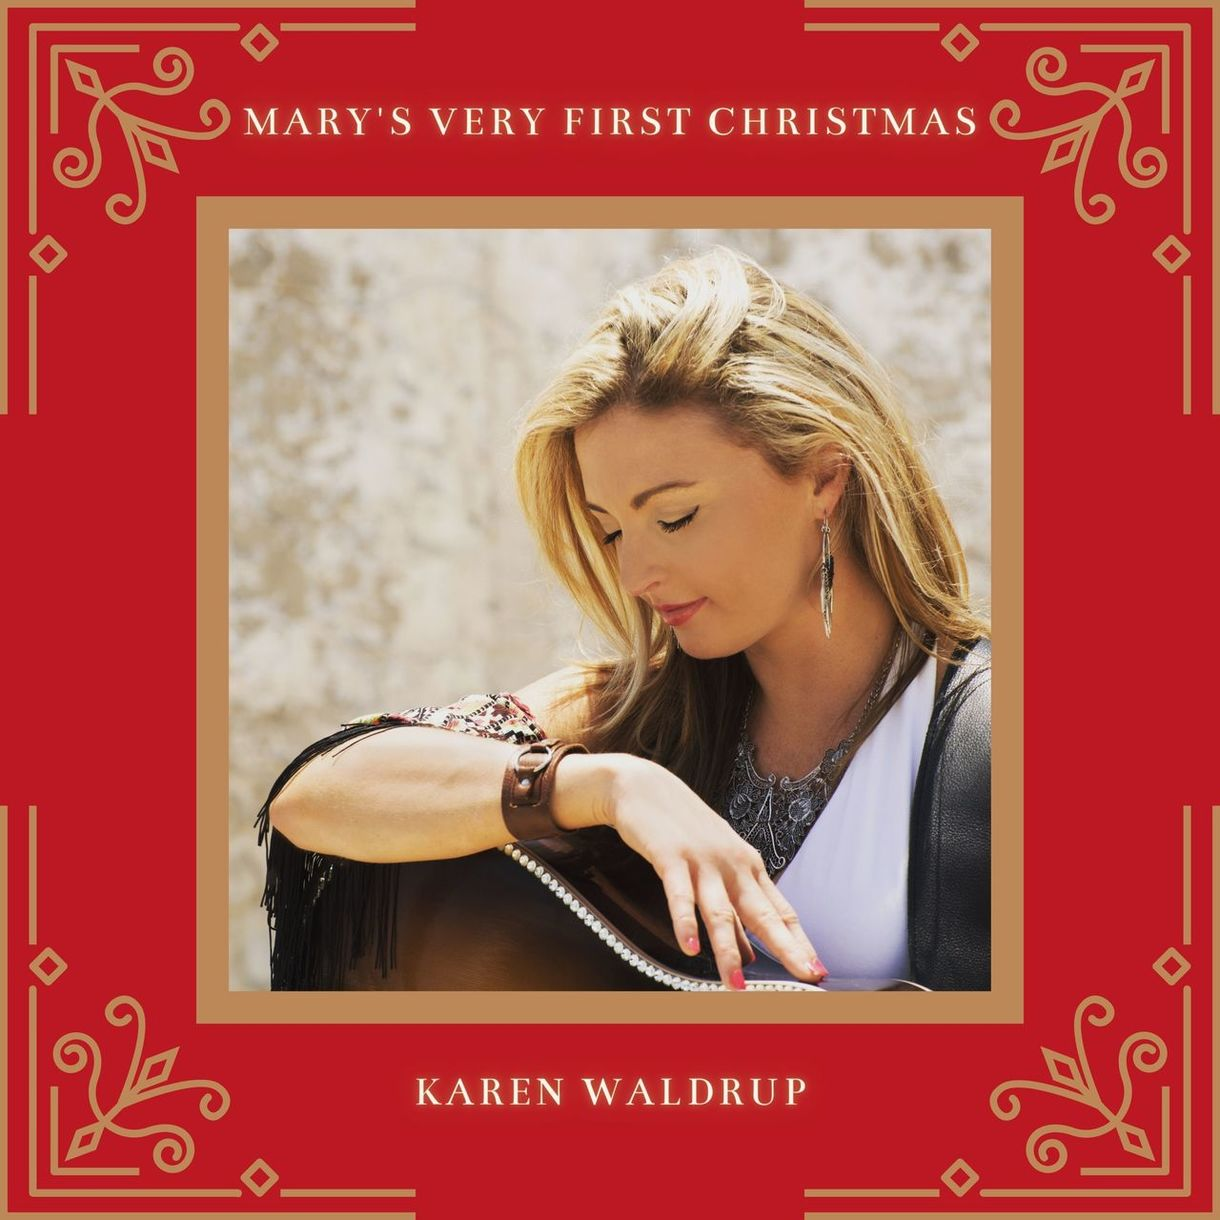 Karen Waldrup - Mary's Very First Christmas